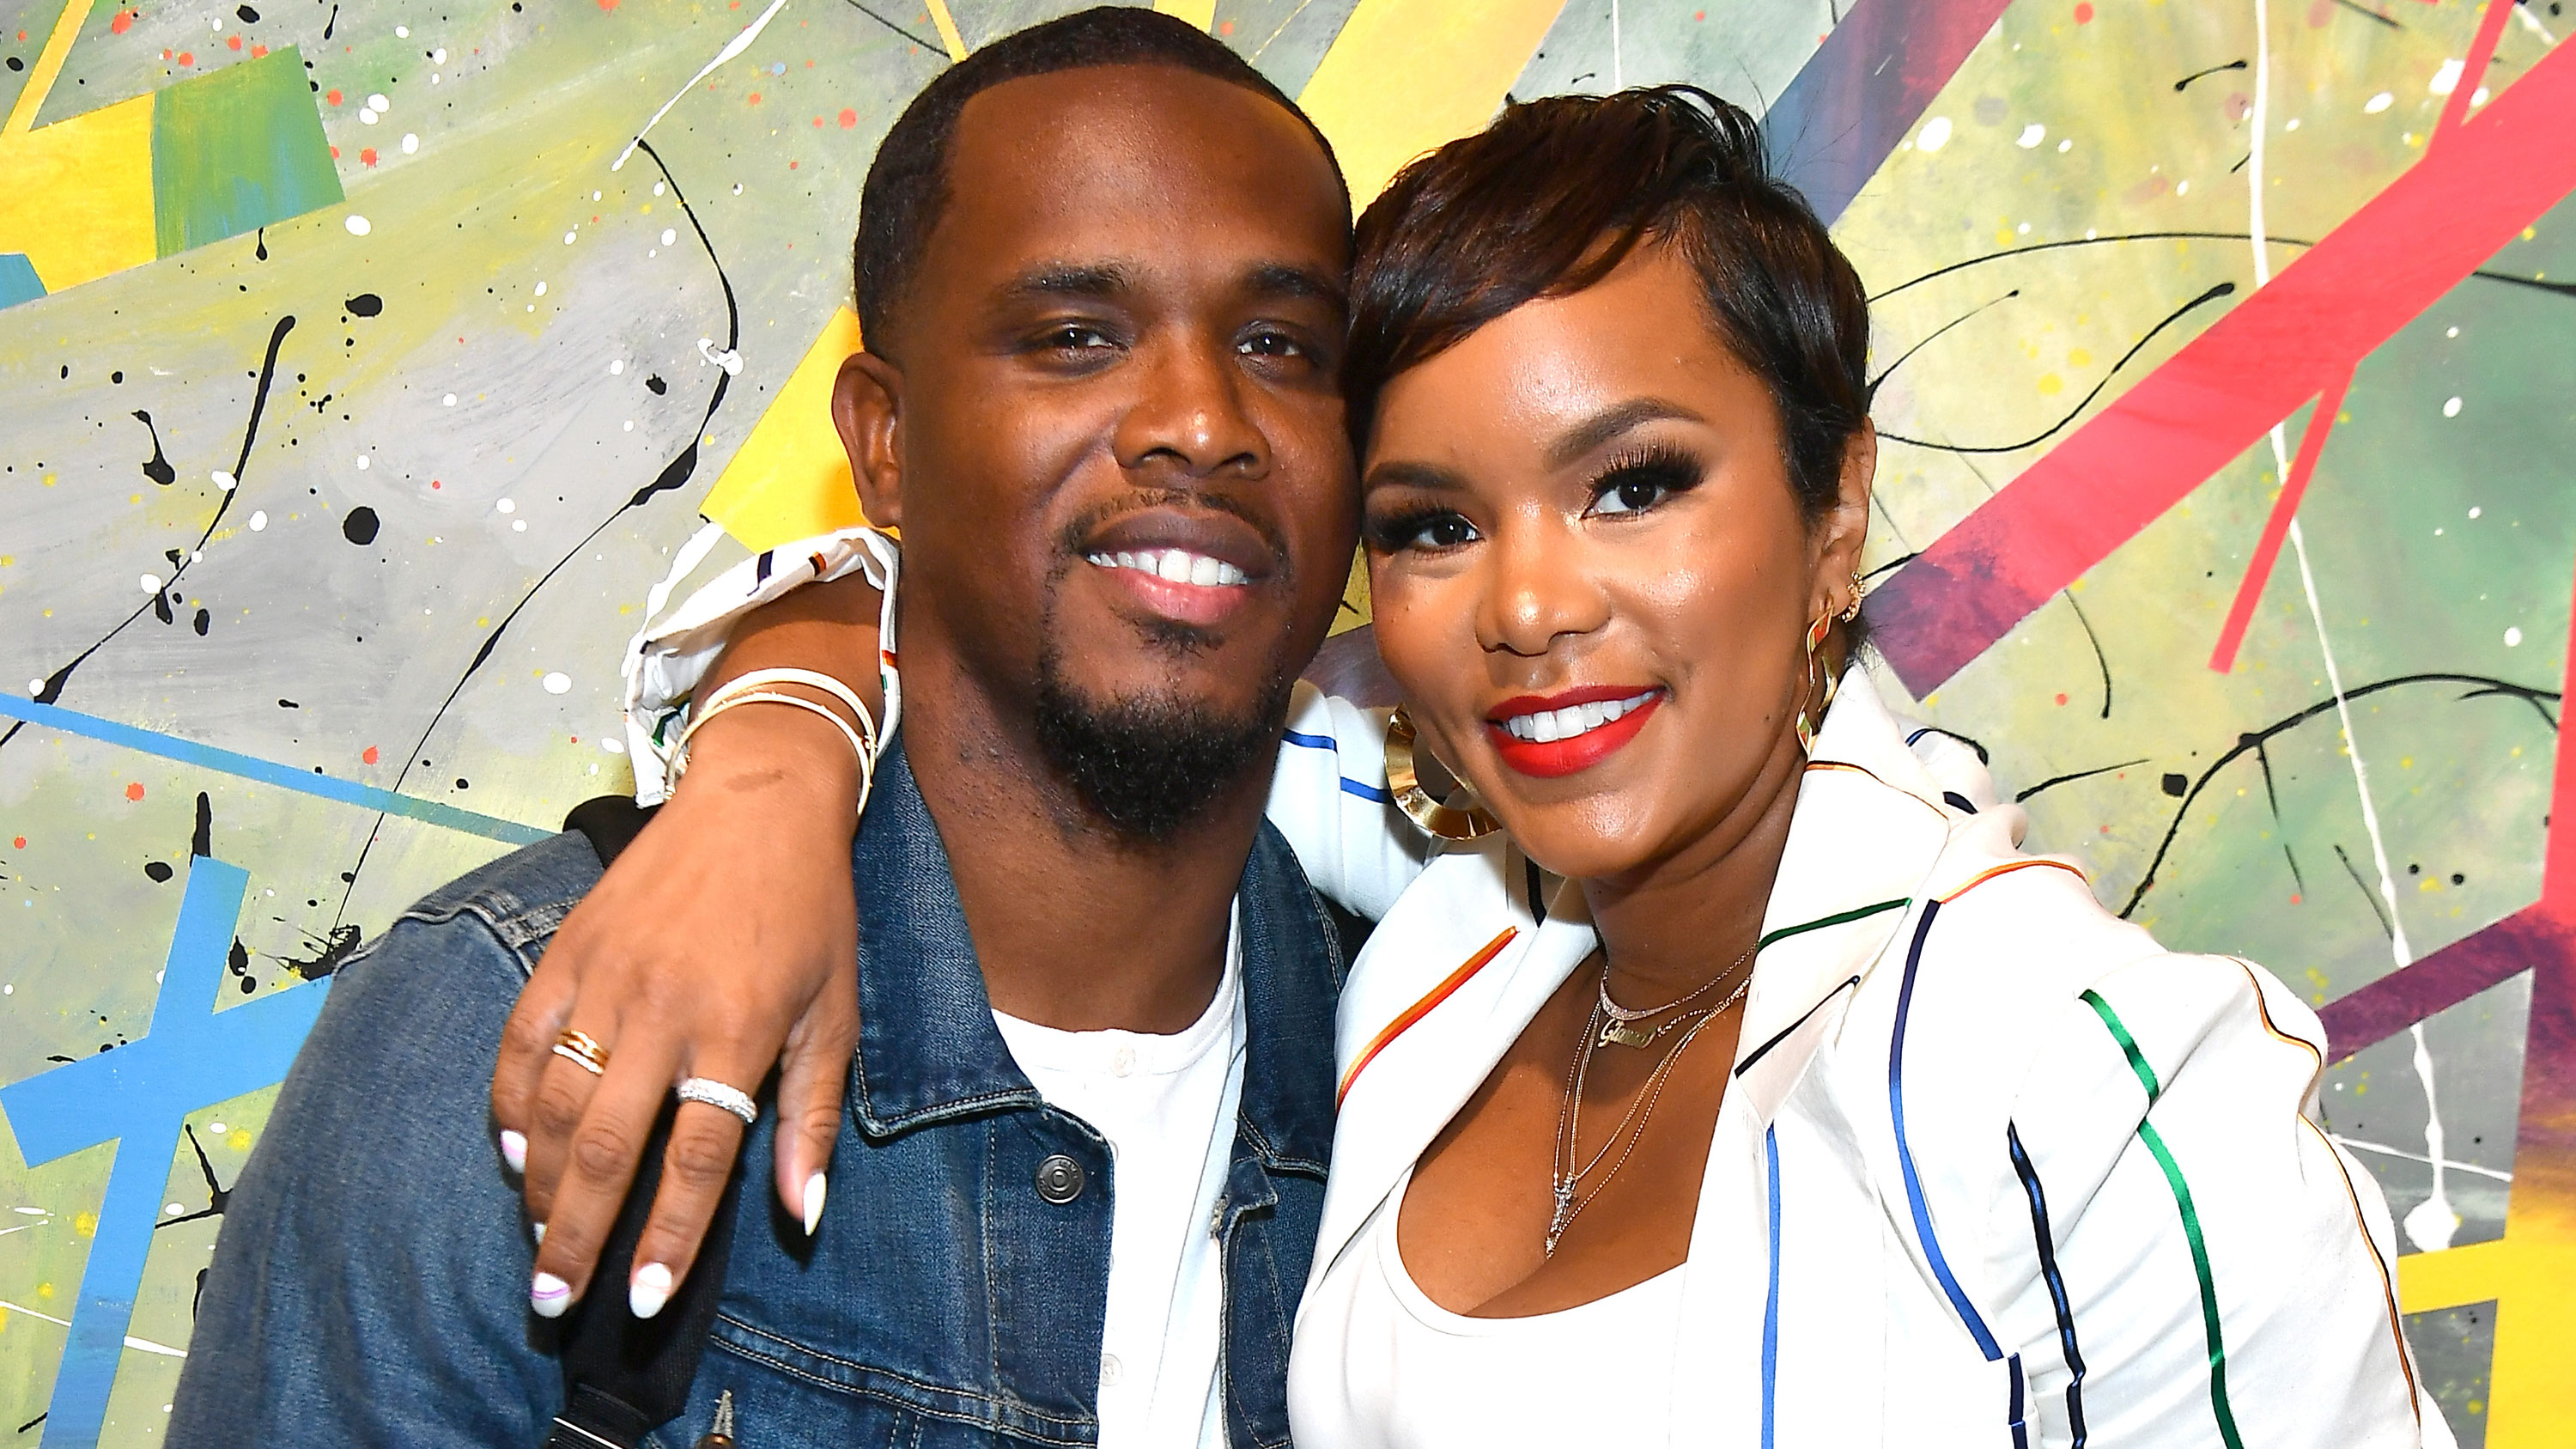 Former Destiny's Child star LeToya Luckett announces split from husband